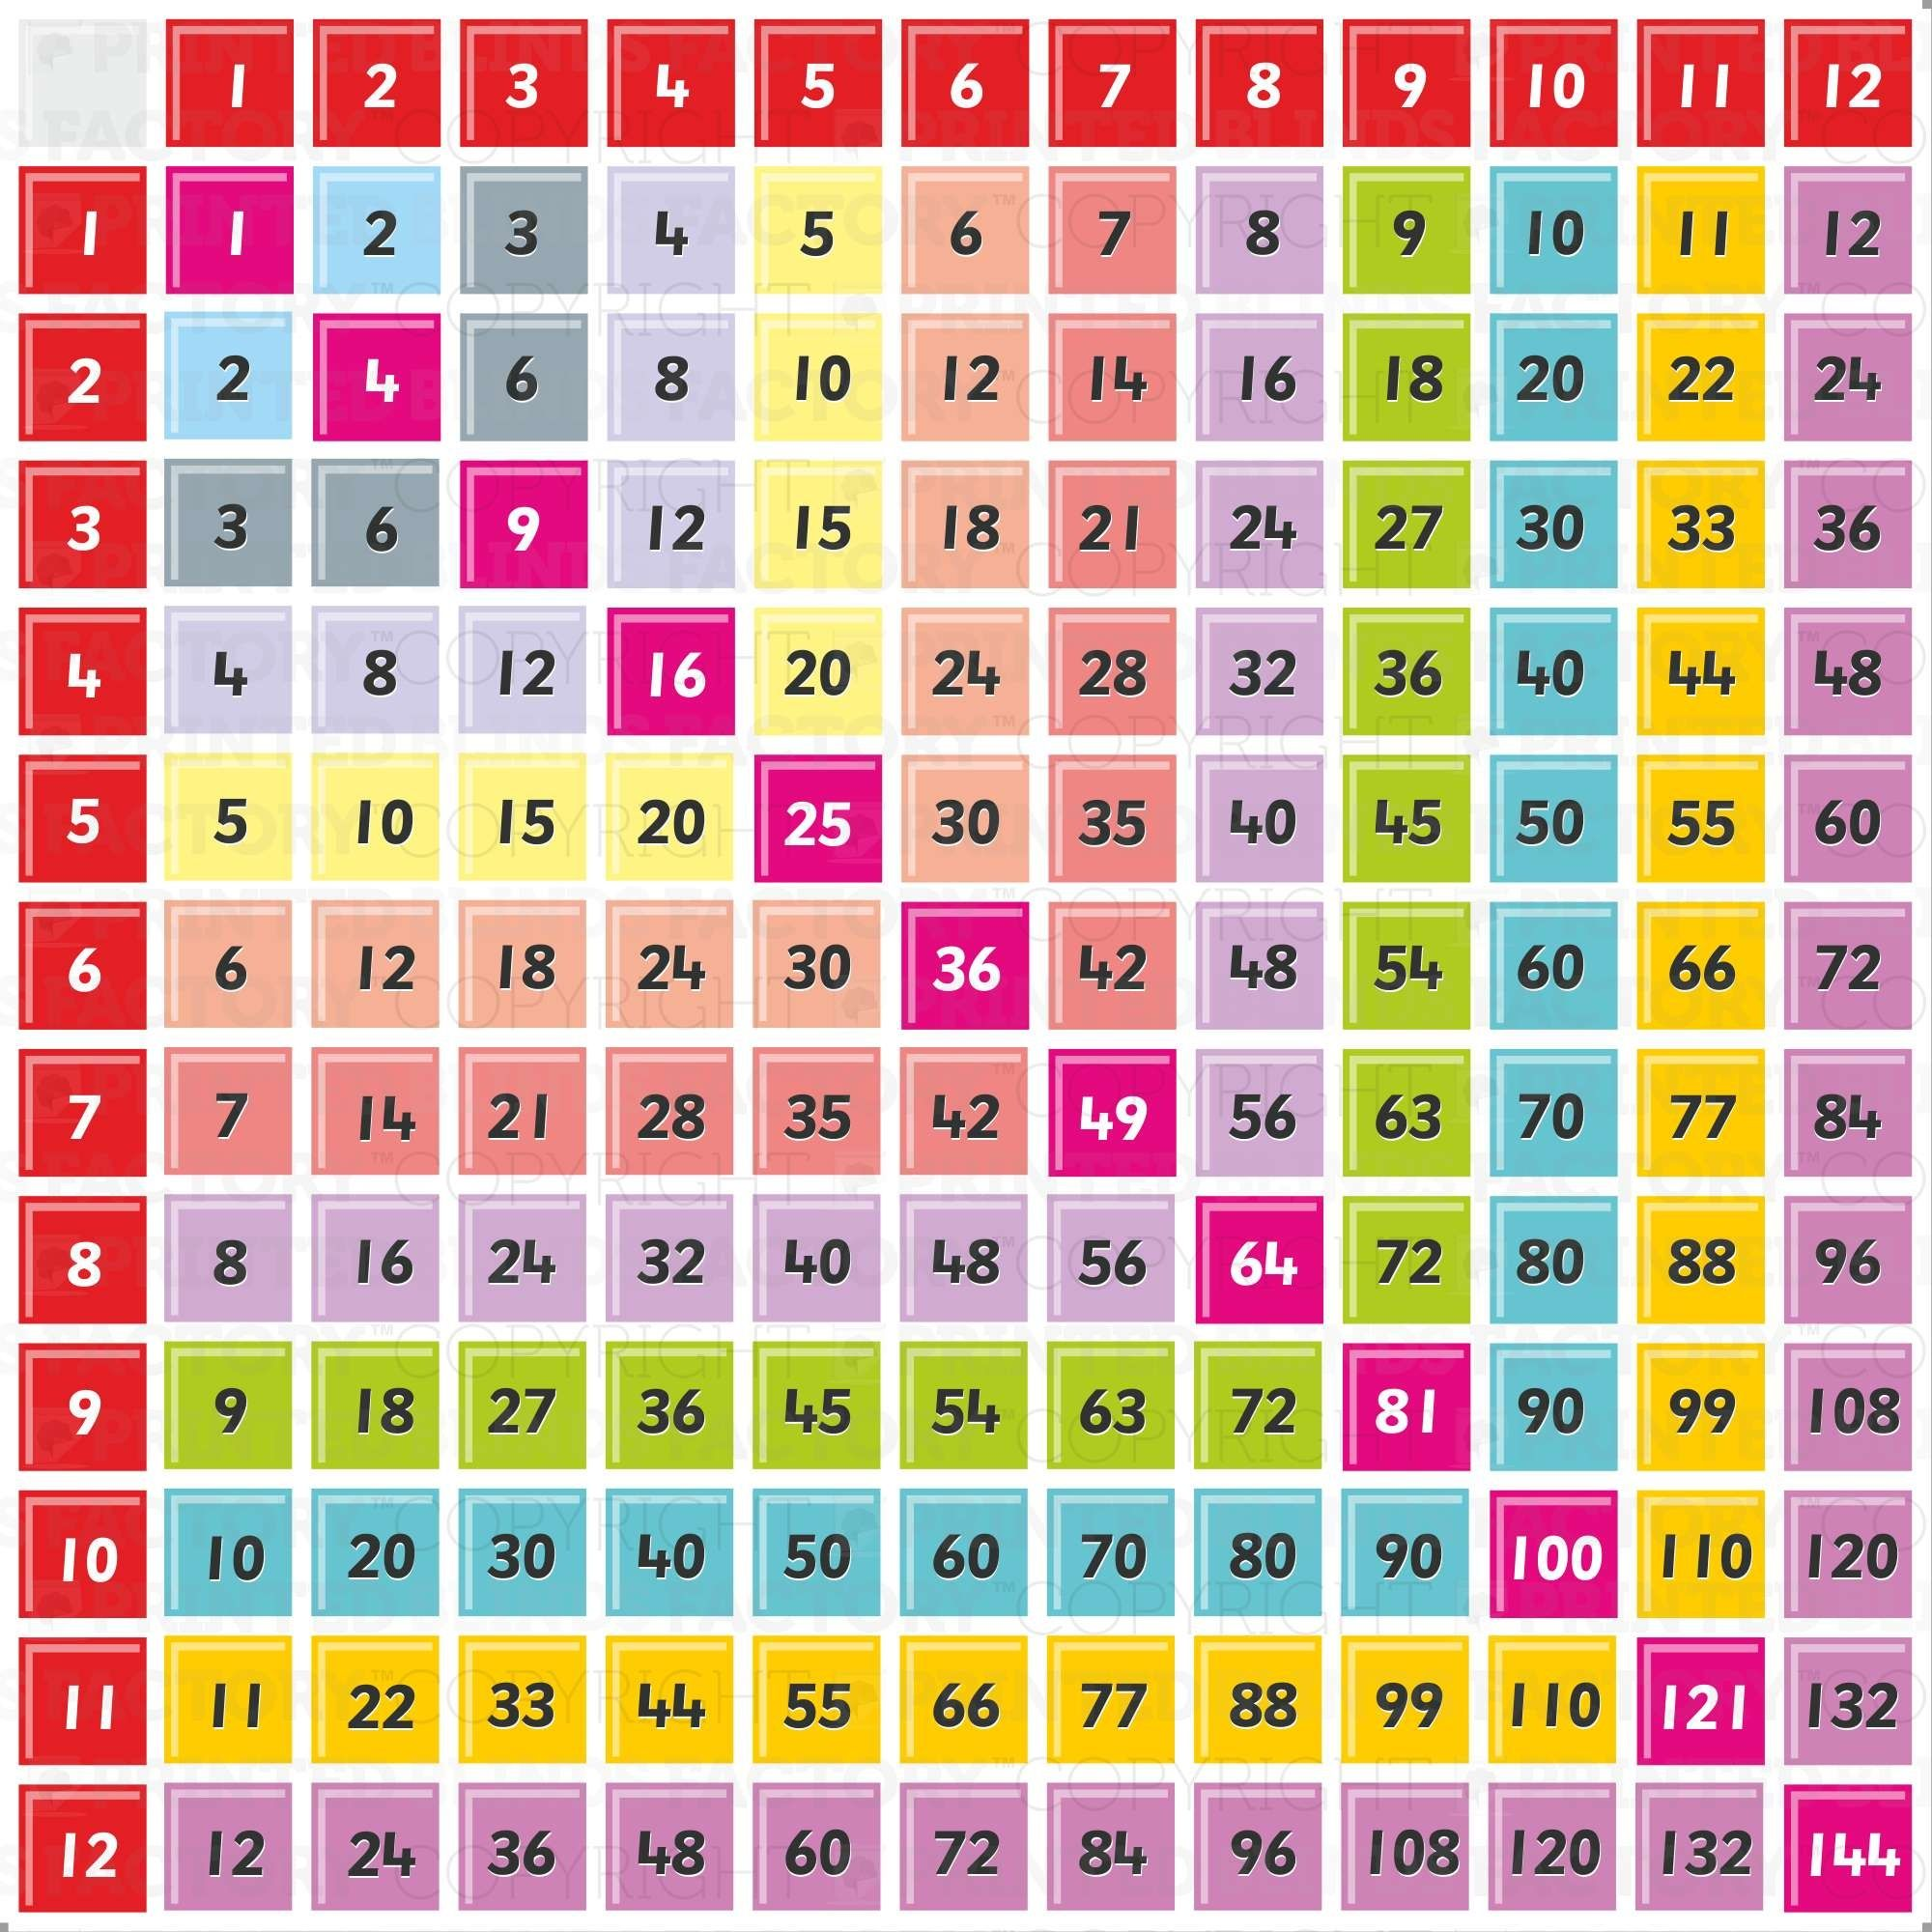 Worksheet Printable Times Table Multiplication Times Table Chart 1 12 Templates Loving Printable